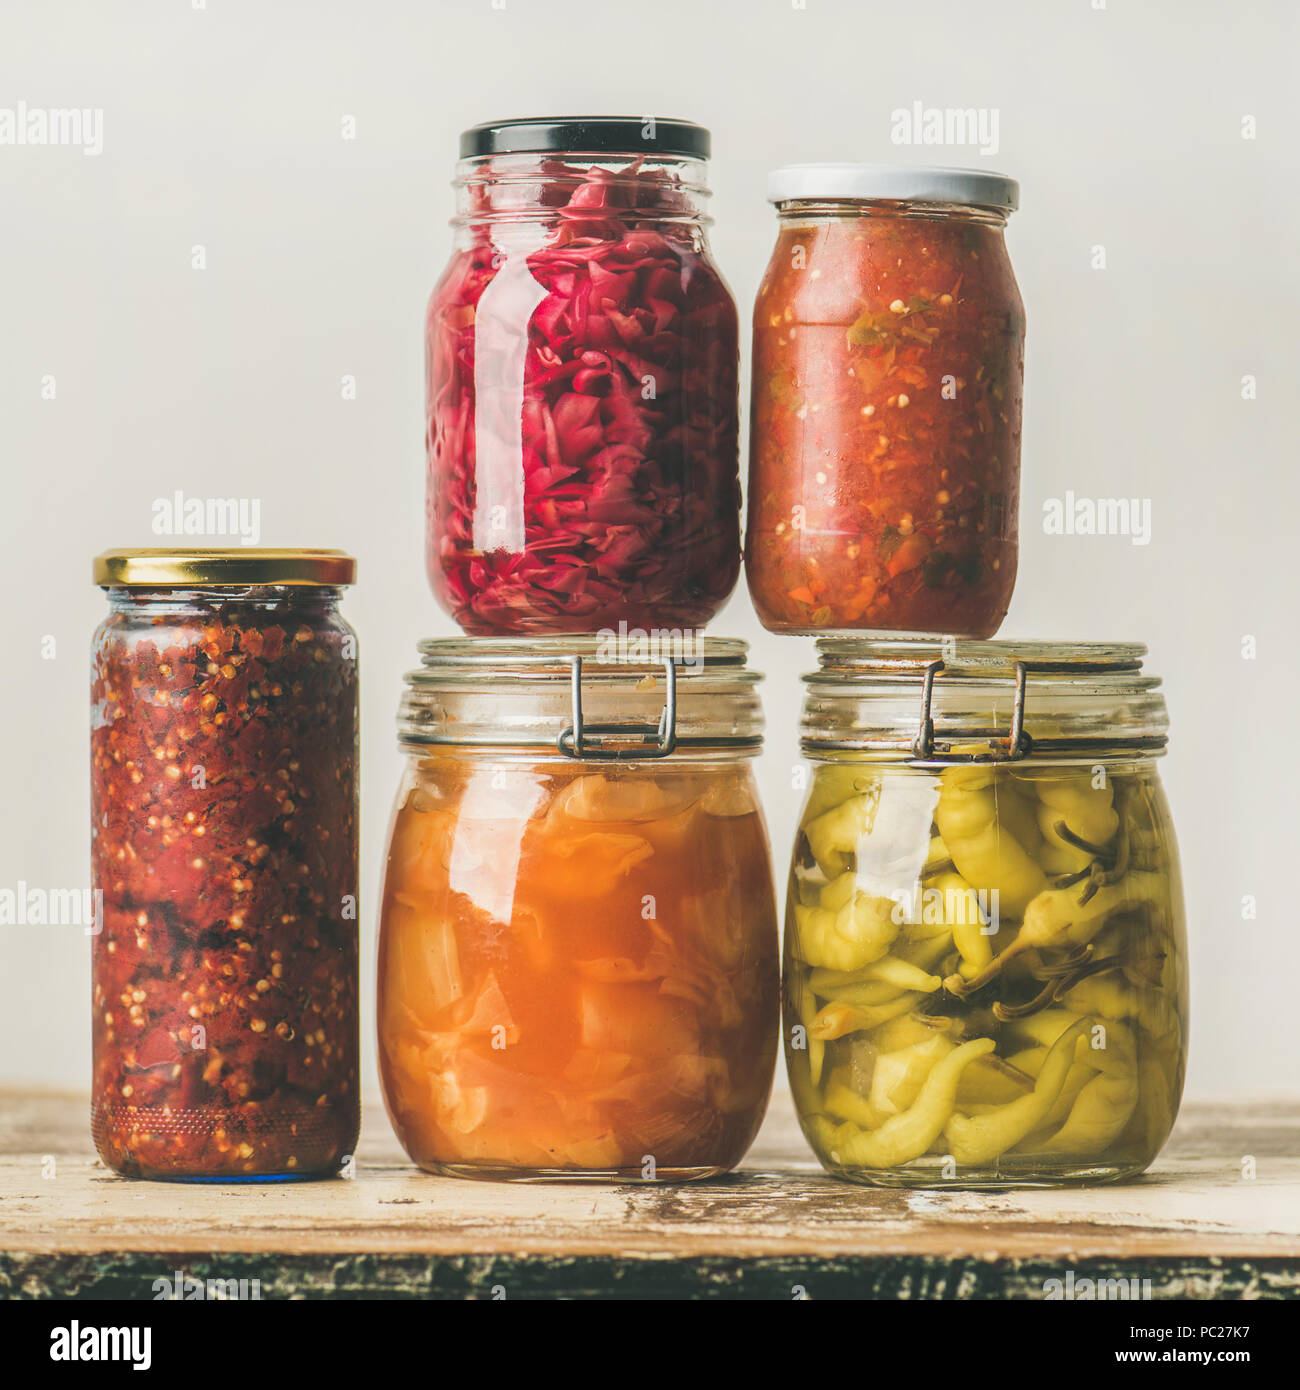 Autumn seasonal pickled or fermented vegetables. Home food canning concept - Stock Image